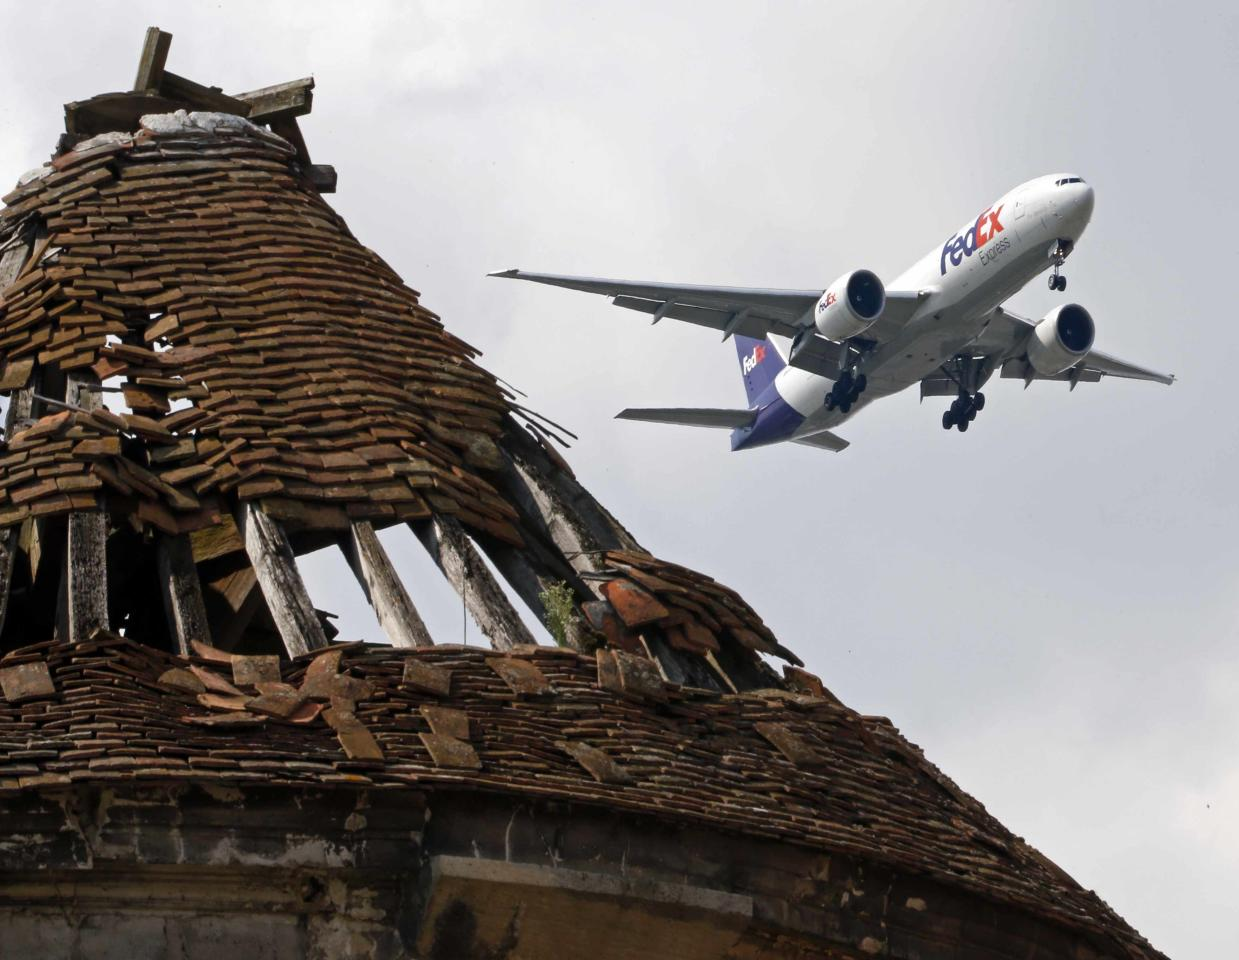 A FedEx plane flies over a former pigeon house, in Goussainville-Vieux Pays, 20 kms (12 miles) north of Paris, August 28, 2013. In 1972 the farming village of 144 homes found itself under the direct flight path of Roissy's Charles de Gaulle Airport when it opened. Residents started to abandon their homes, unable to endure the constant noise of the passenger planes flying overhead. Nowadays, only few families remain living in what has become almost a ghost village. Picture taken August 28, 2013. REUTERS/Charles Platiau (FRANCE - Tags: SOCIETY TRANSPORT)